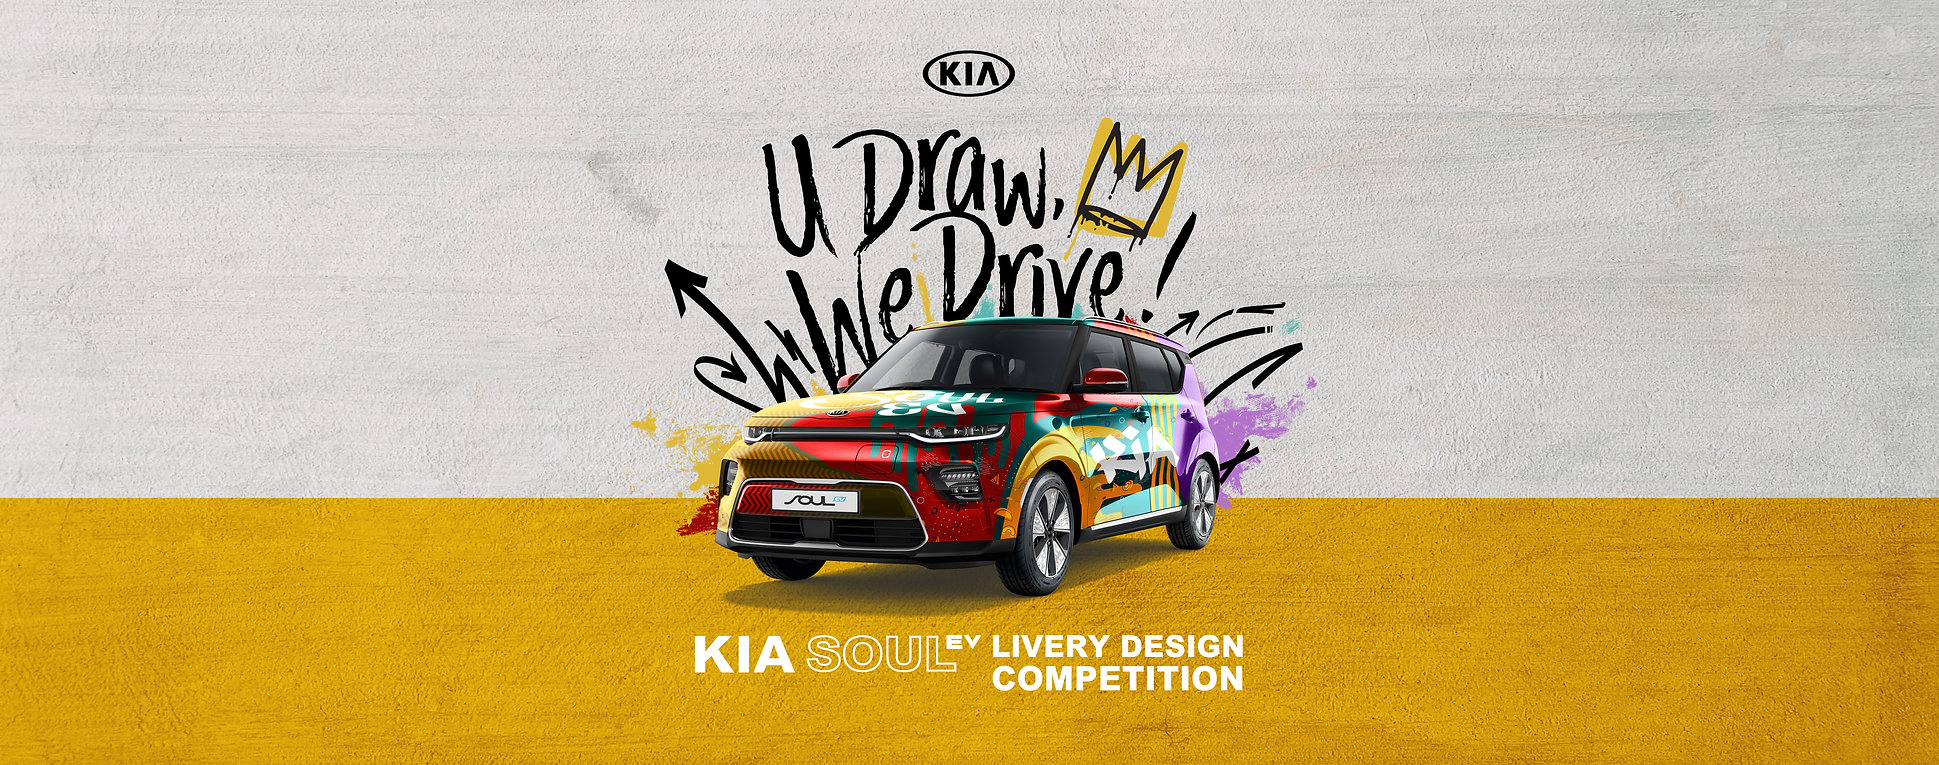 Kia_liveryCompetition_site-image_eng.jpg